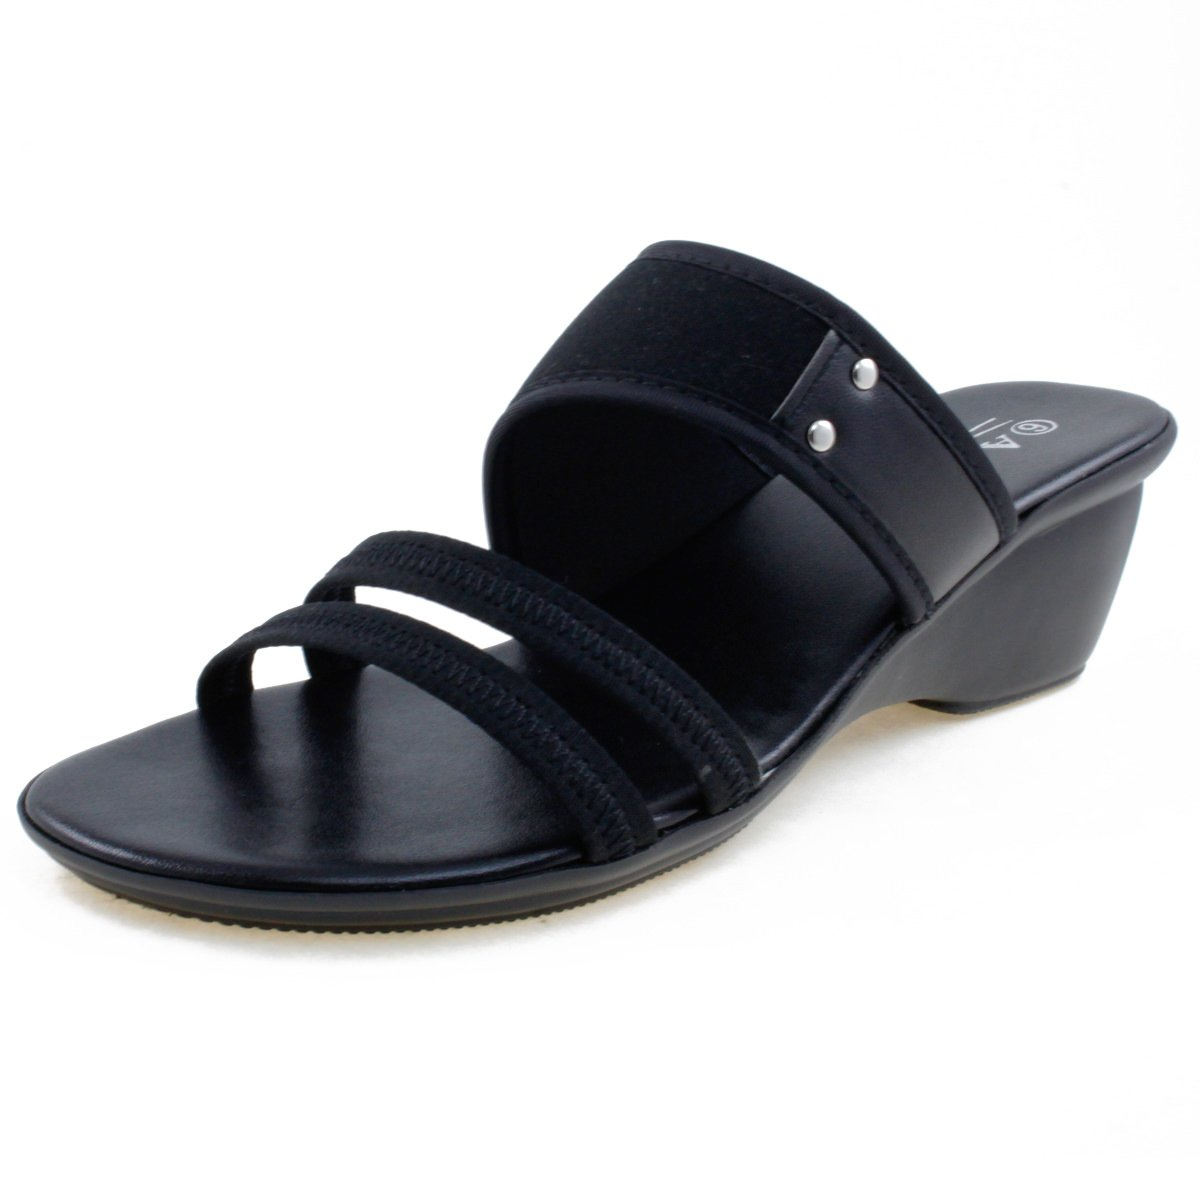 Agape HOLDING-02 Lightweight Neoprene Wedge Sandal B07BX7PS3B 7.5 B(M) US|Black